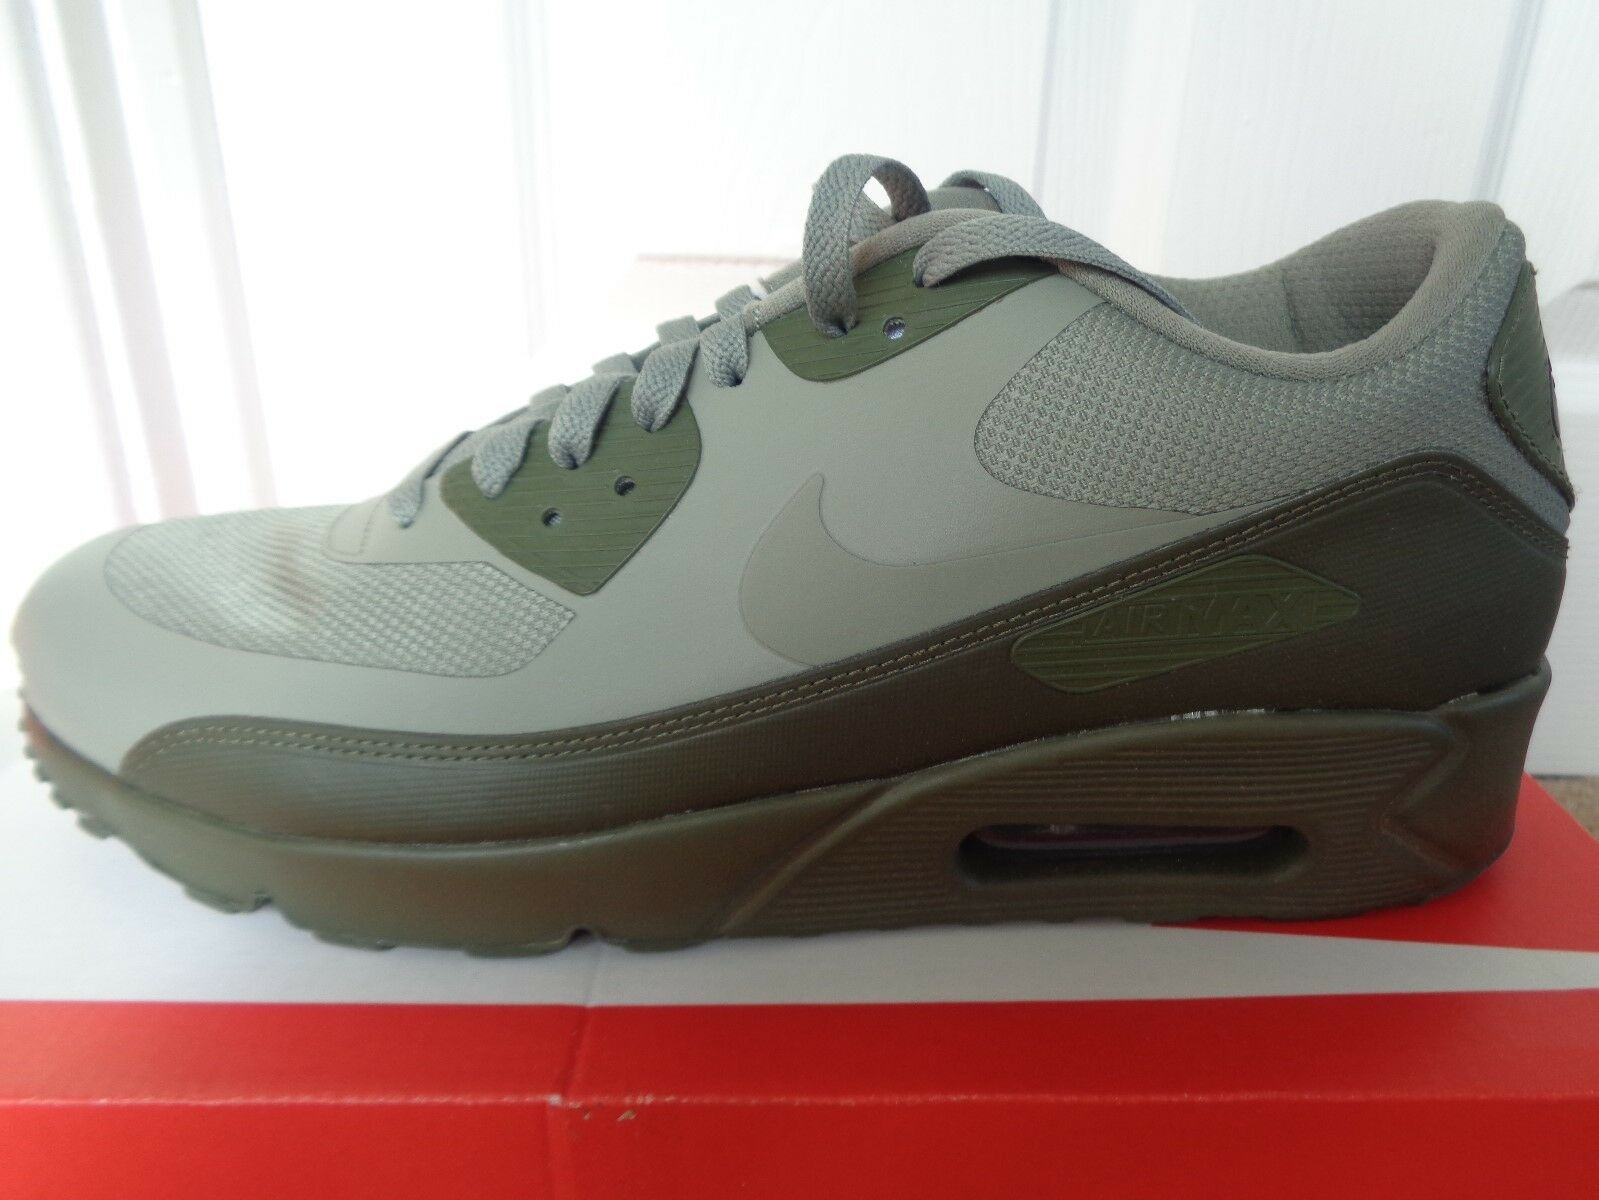 Nike Air Max 90 Ultra 2.0 Trainer 875695 Essential 013 EU 44.5 US 10.5